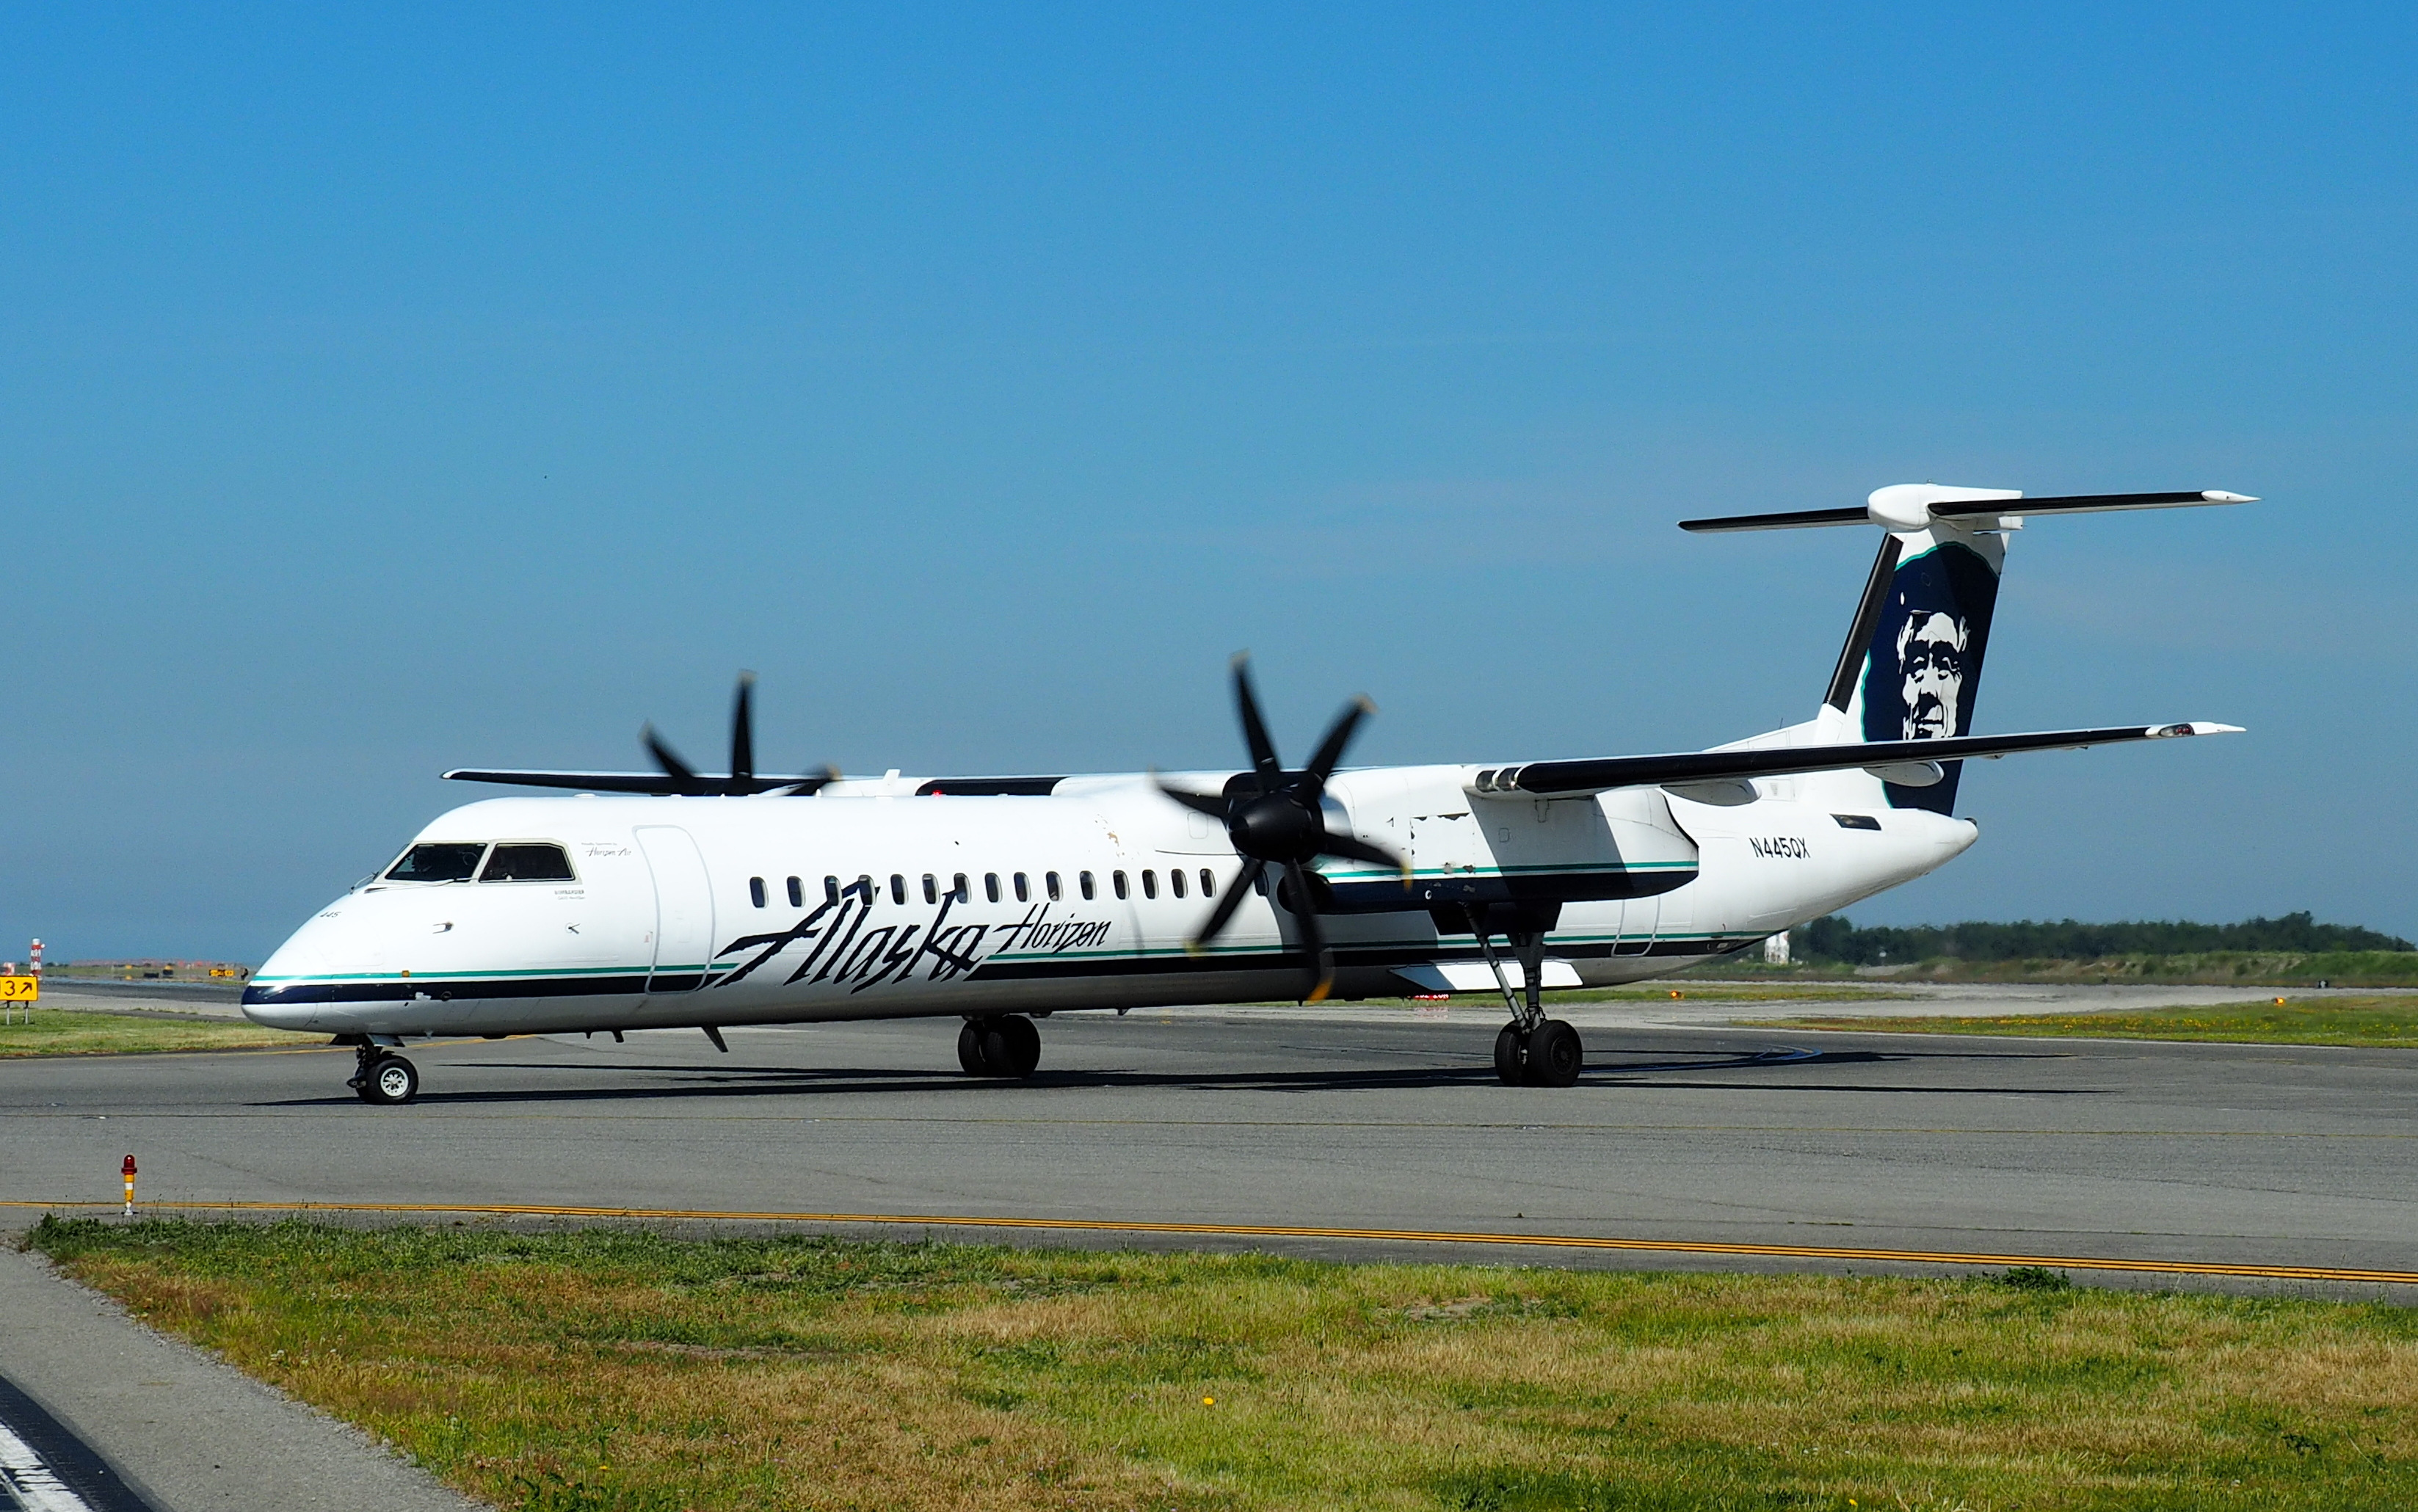 An Alaska Airlines Q400 - now De Havilland Canada DHC-8-400 - taxies in at YVR.